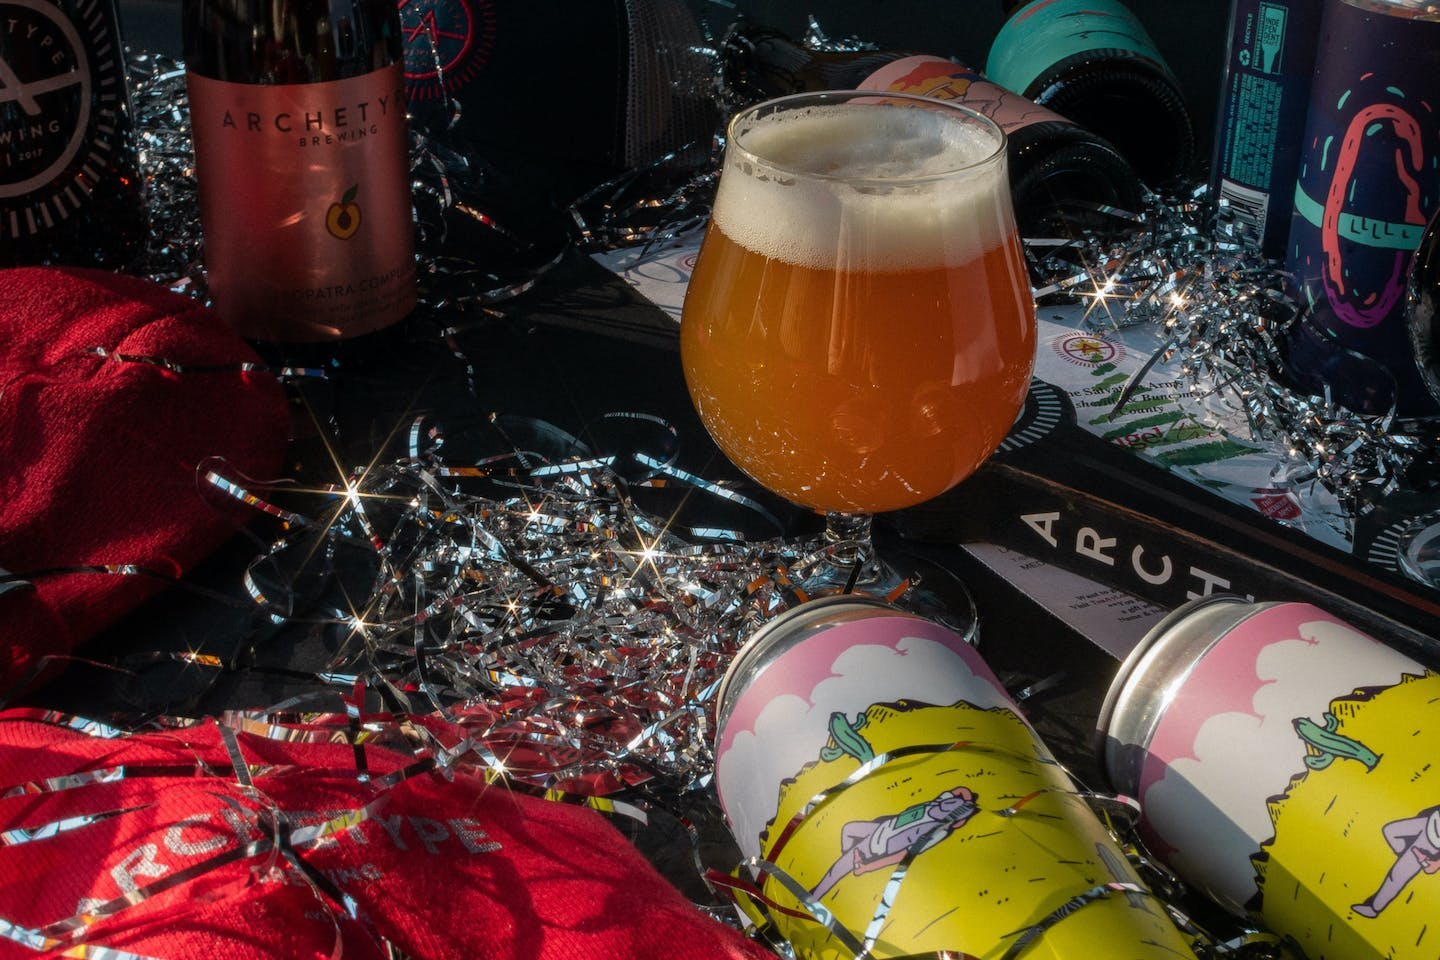 2020_Holiday Photo_ Archetype Brewing